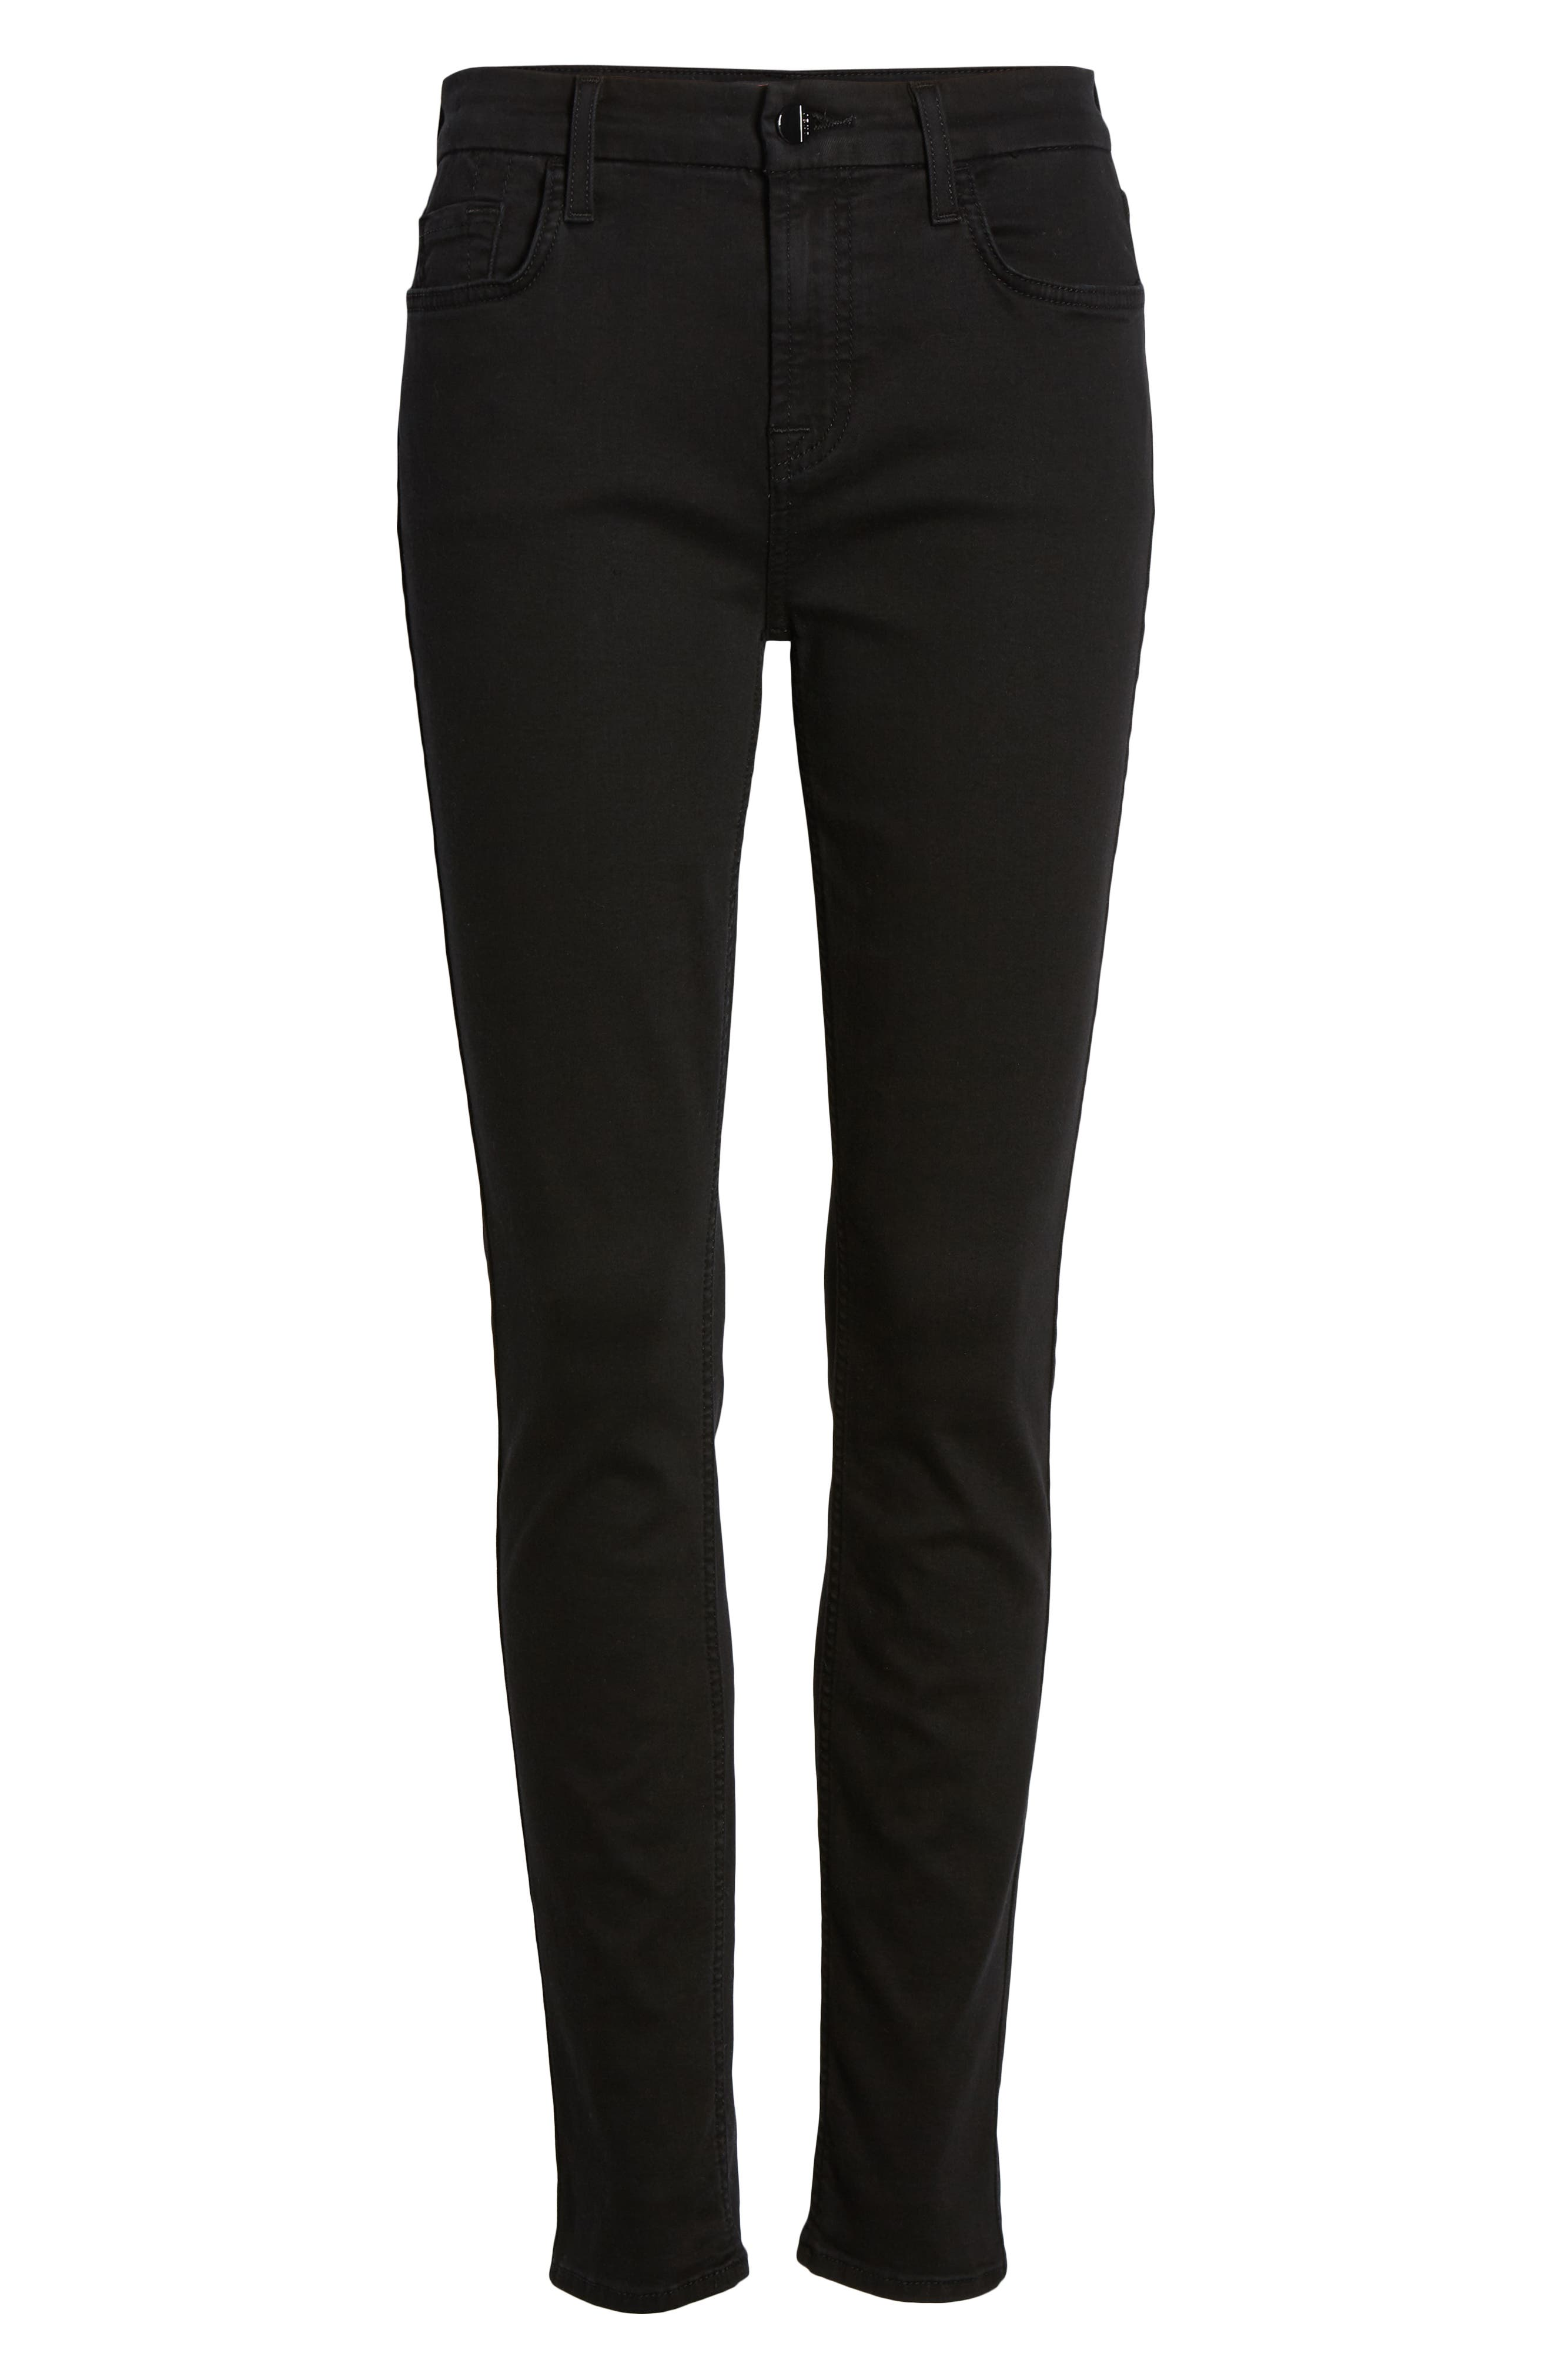 JEN7 BY 7 FOR ALL MANKIND, Skinny Jeans, Alternate thumbnail 7, color, CLASSIC BLACK NOIR